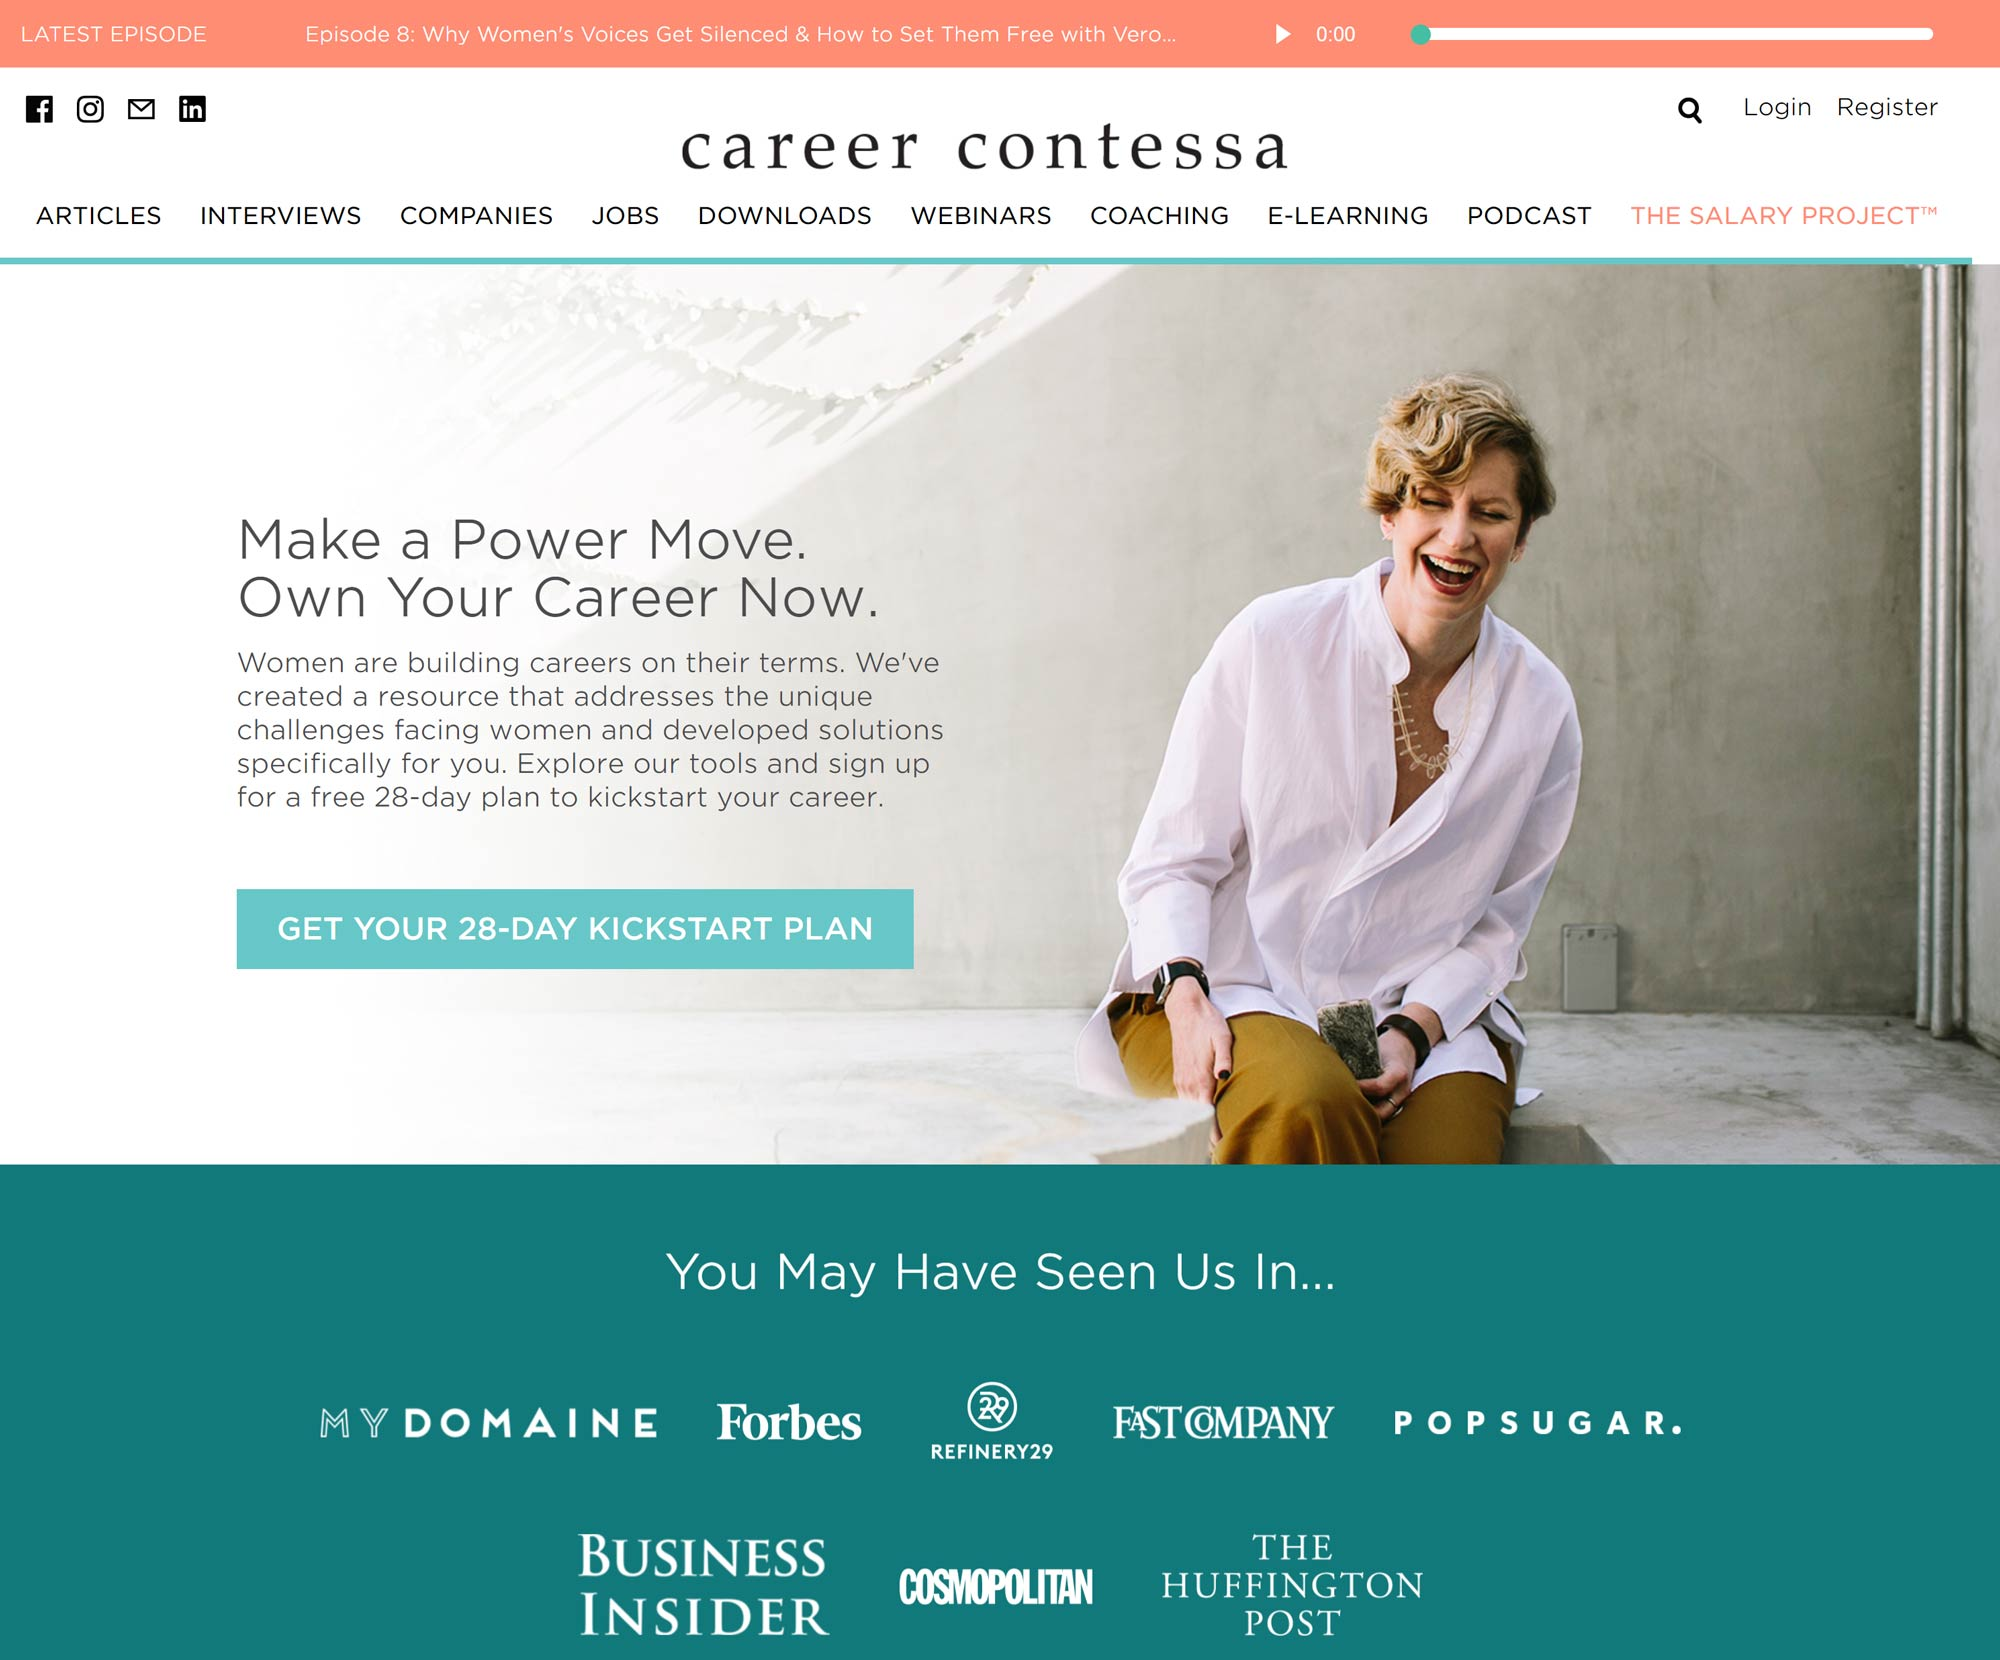 Career Contessa